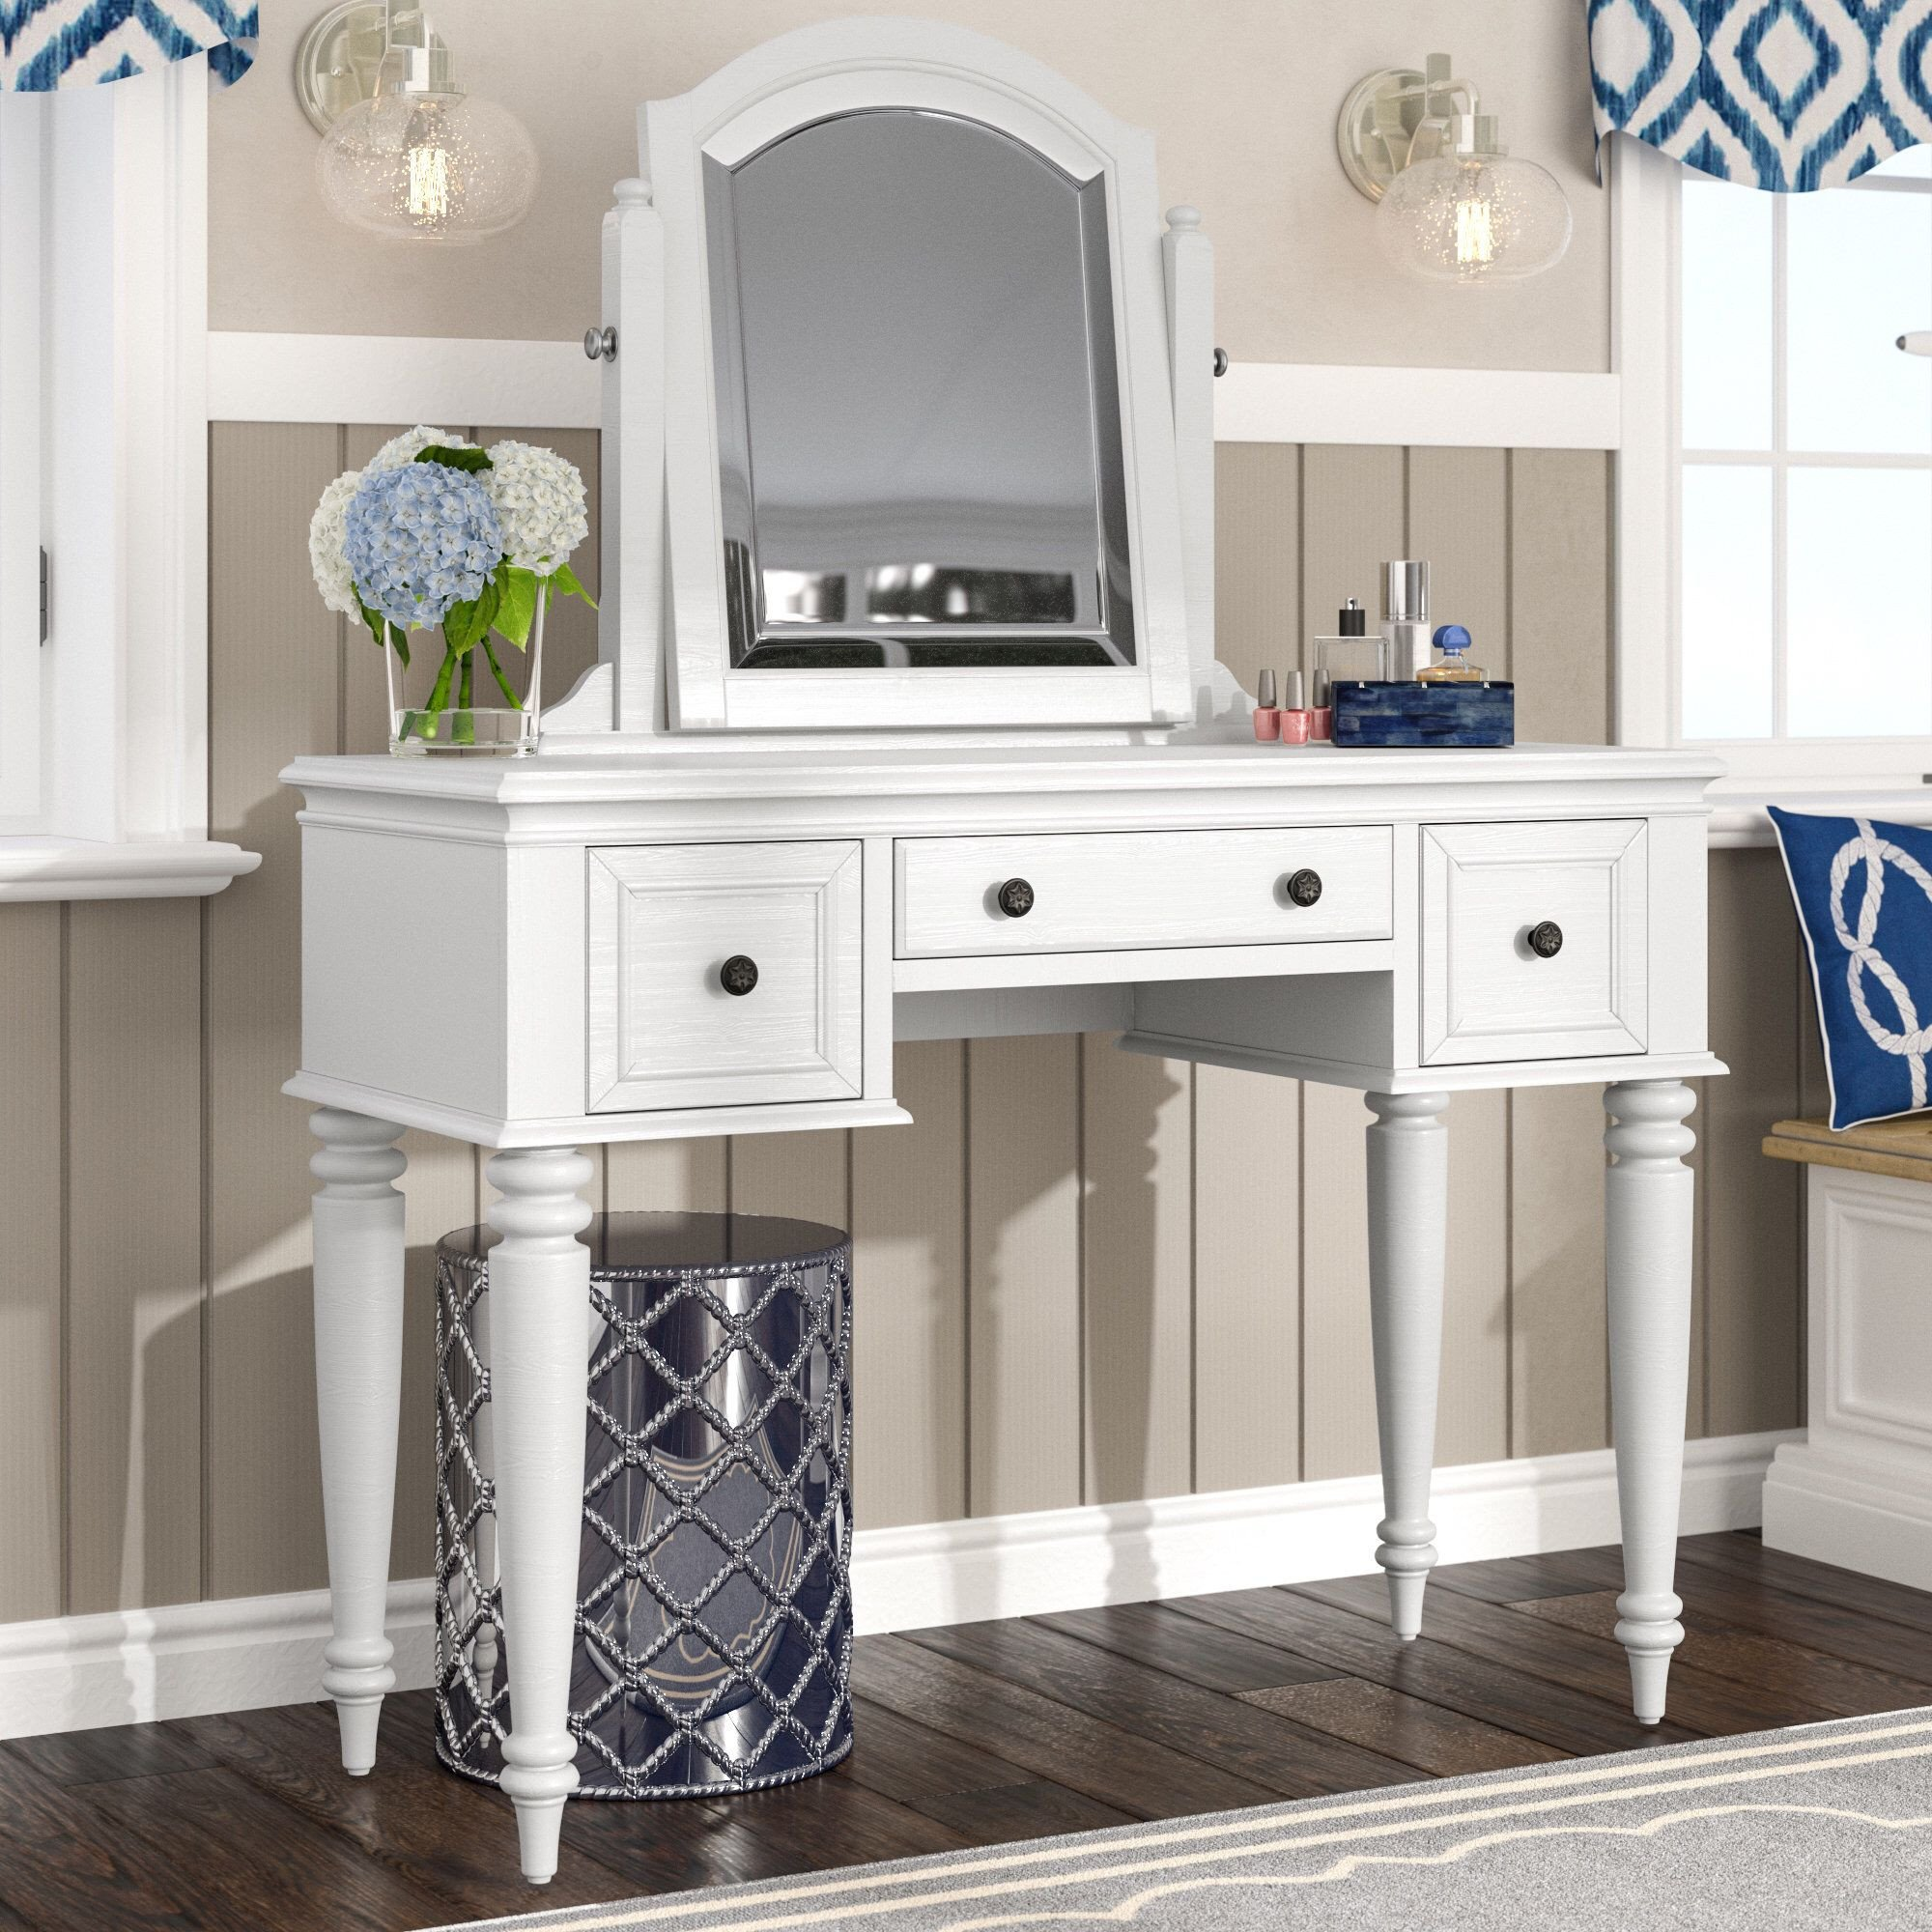 Bedroom Vanity with Drawers Elegant Harrison Vanity with Mirror In 2019 Guest Bedroom